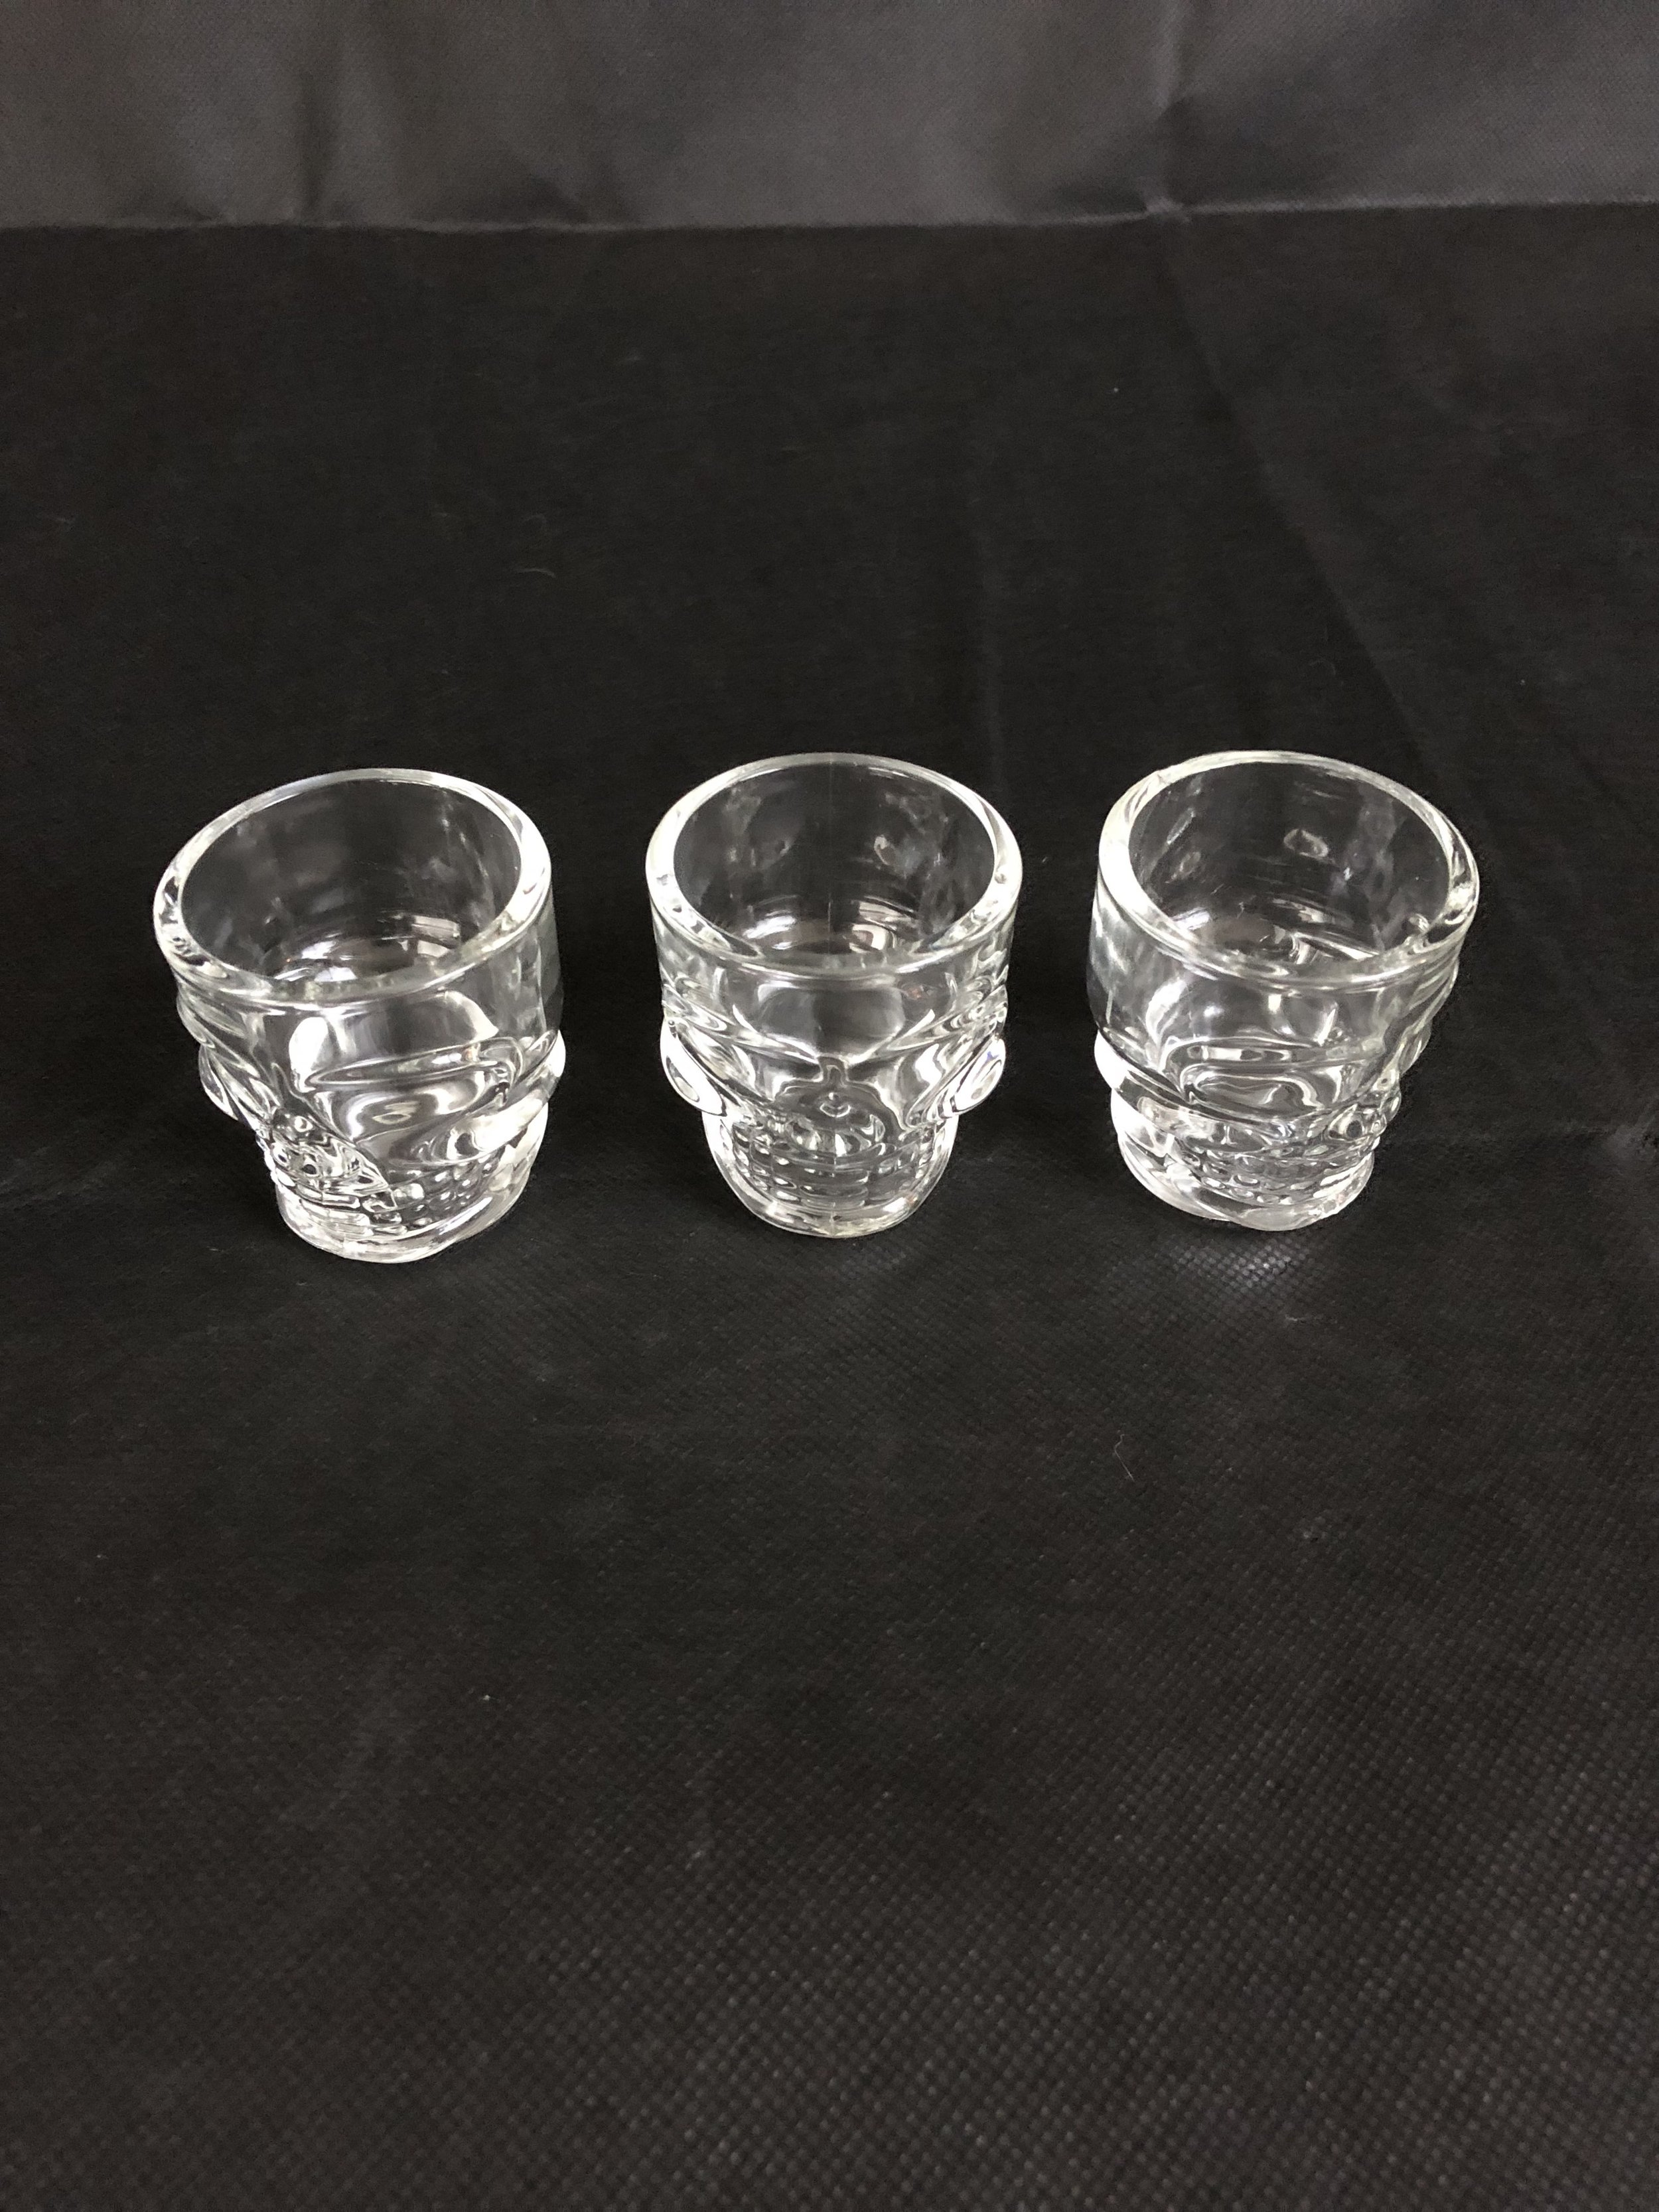 DIY Halloween Project - Skull Shot Glasses Candle Holders.jpg